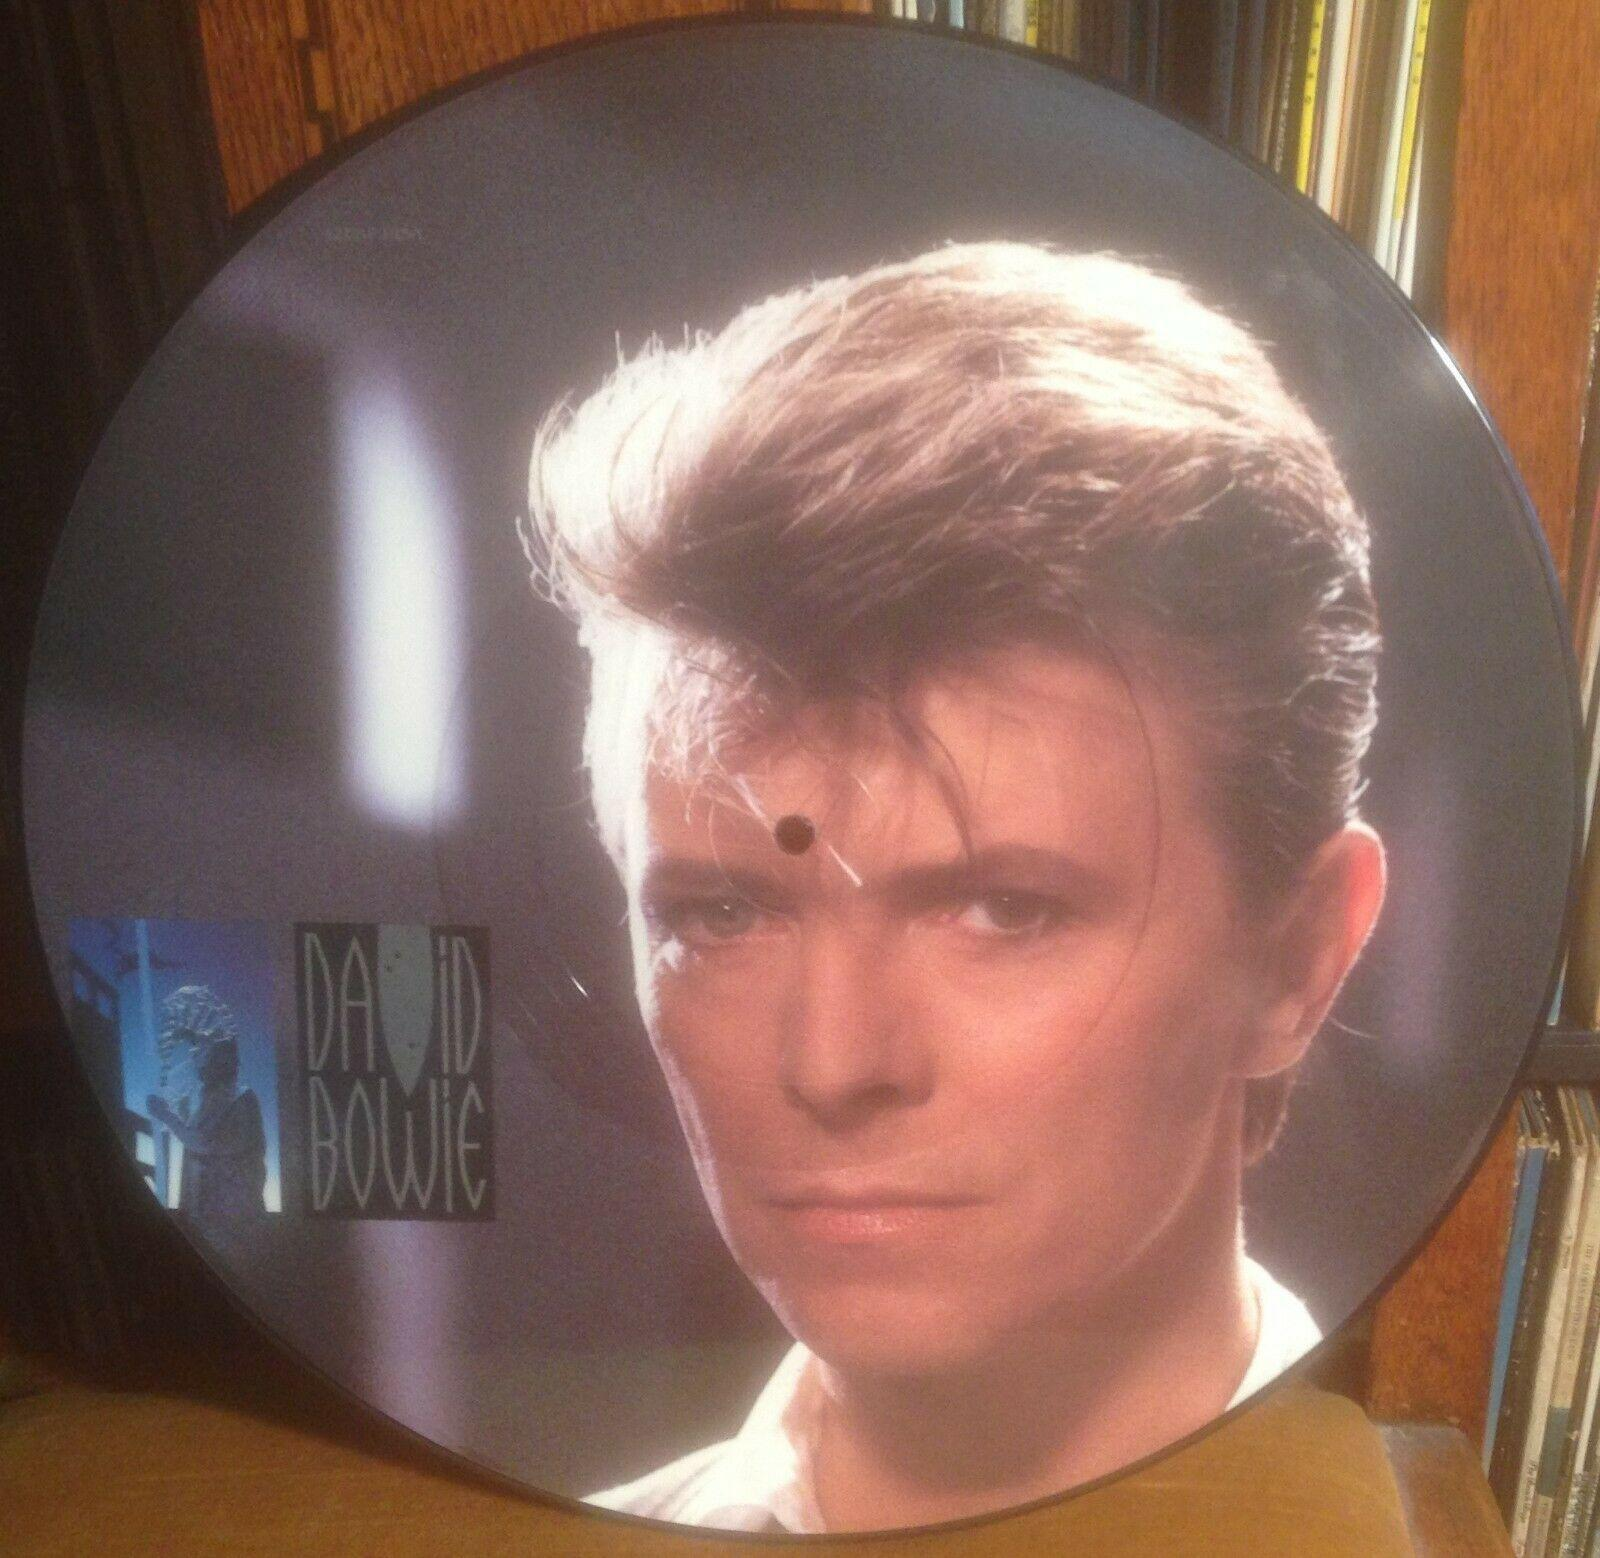 "DAVID BOWIE loving the alien*don't look down '85 UK EMI AMERICA 12"" PICTURE DISC"